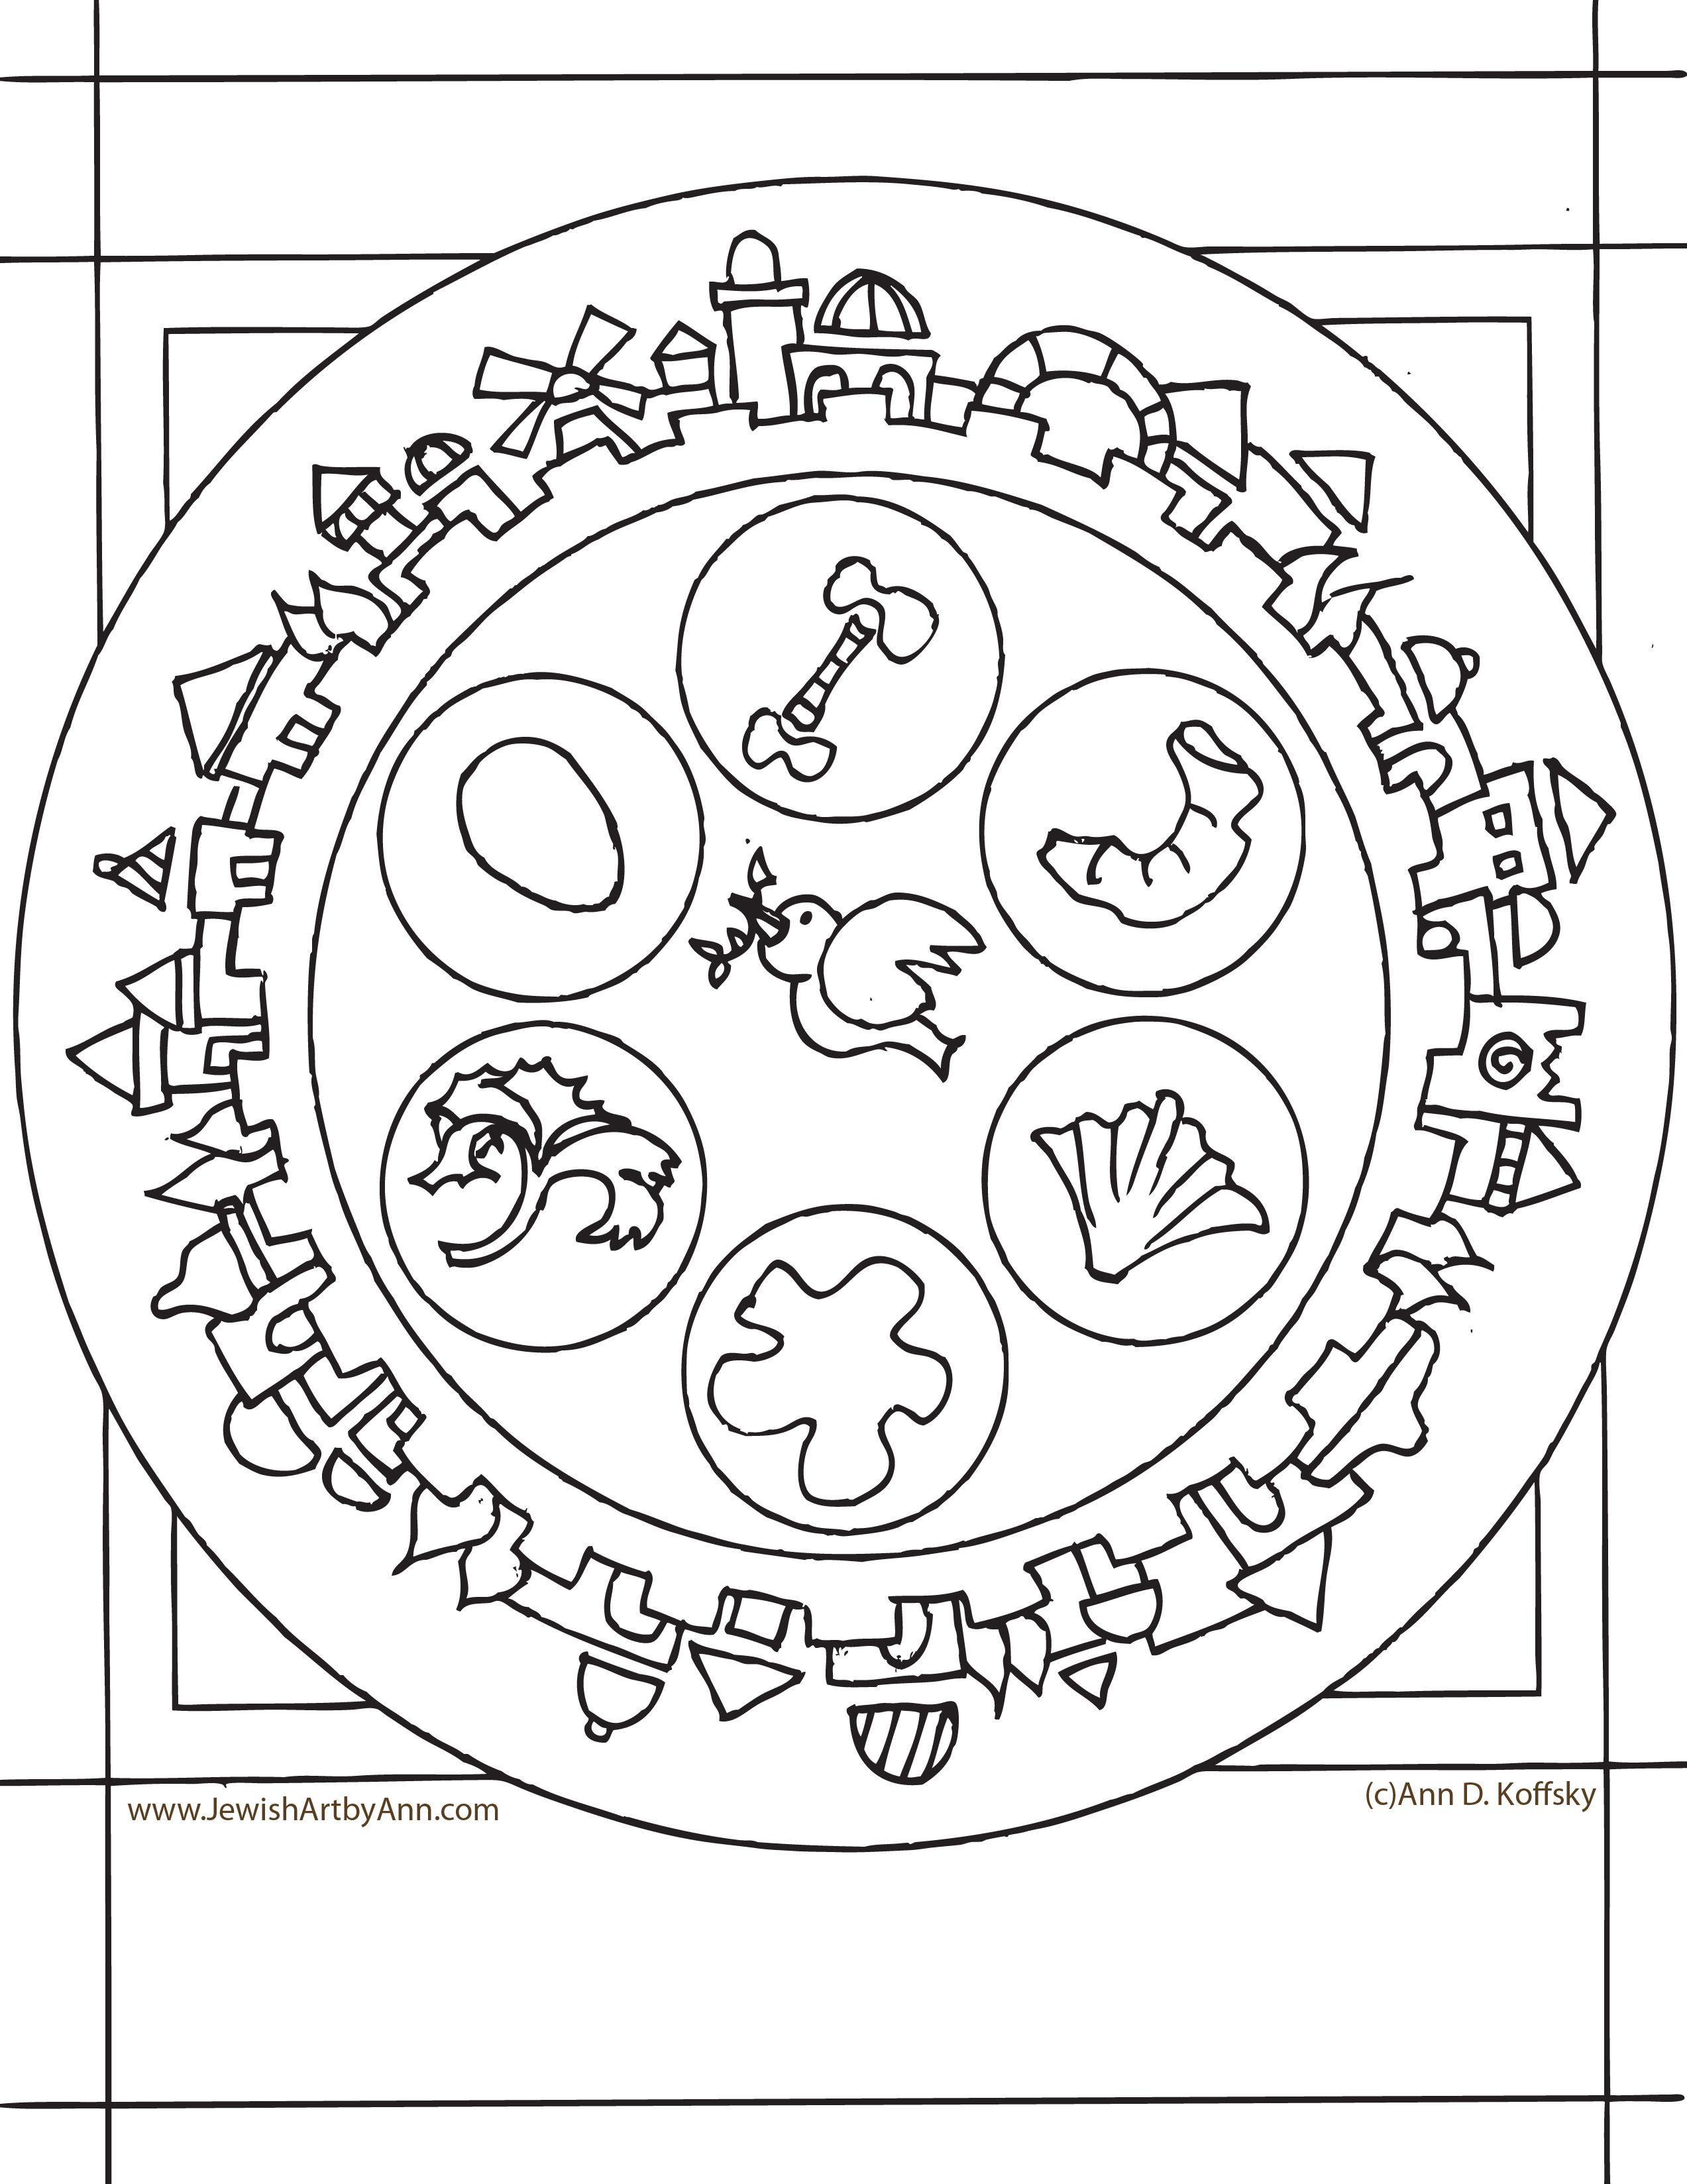 Ann Koffsky Passover Plate Coloring Page Passover